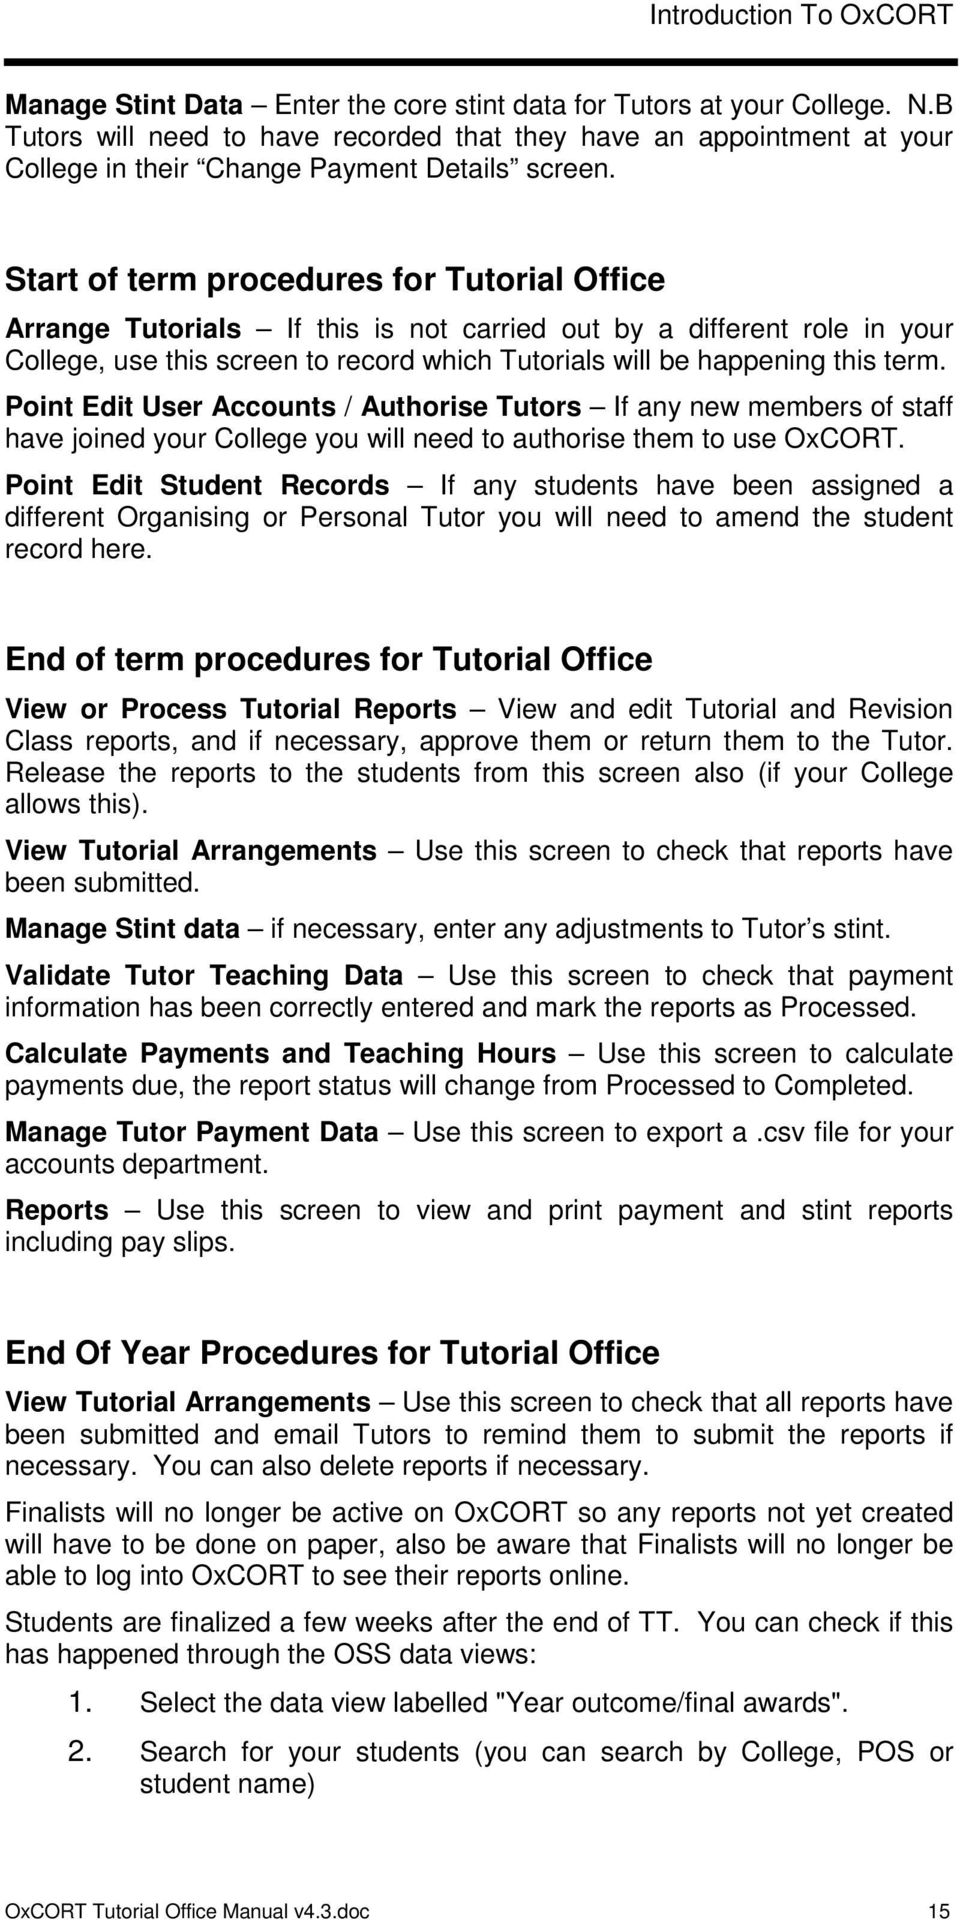 Start of term procedures for Tutorial Office Arrange Tutorials If this is not carried out by a different role in your College, use this screen to record which Tutorials will be happening this term.